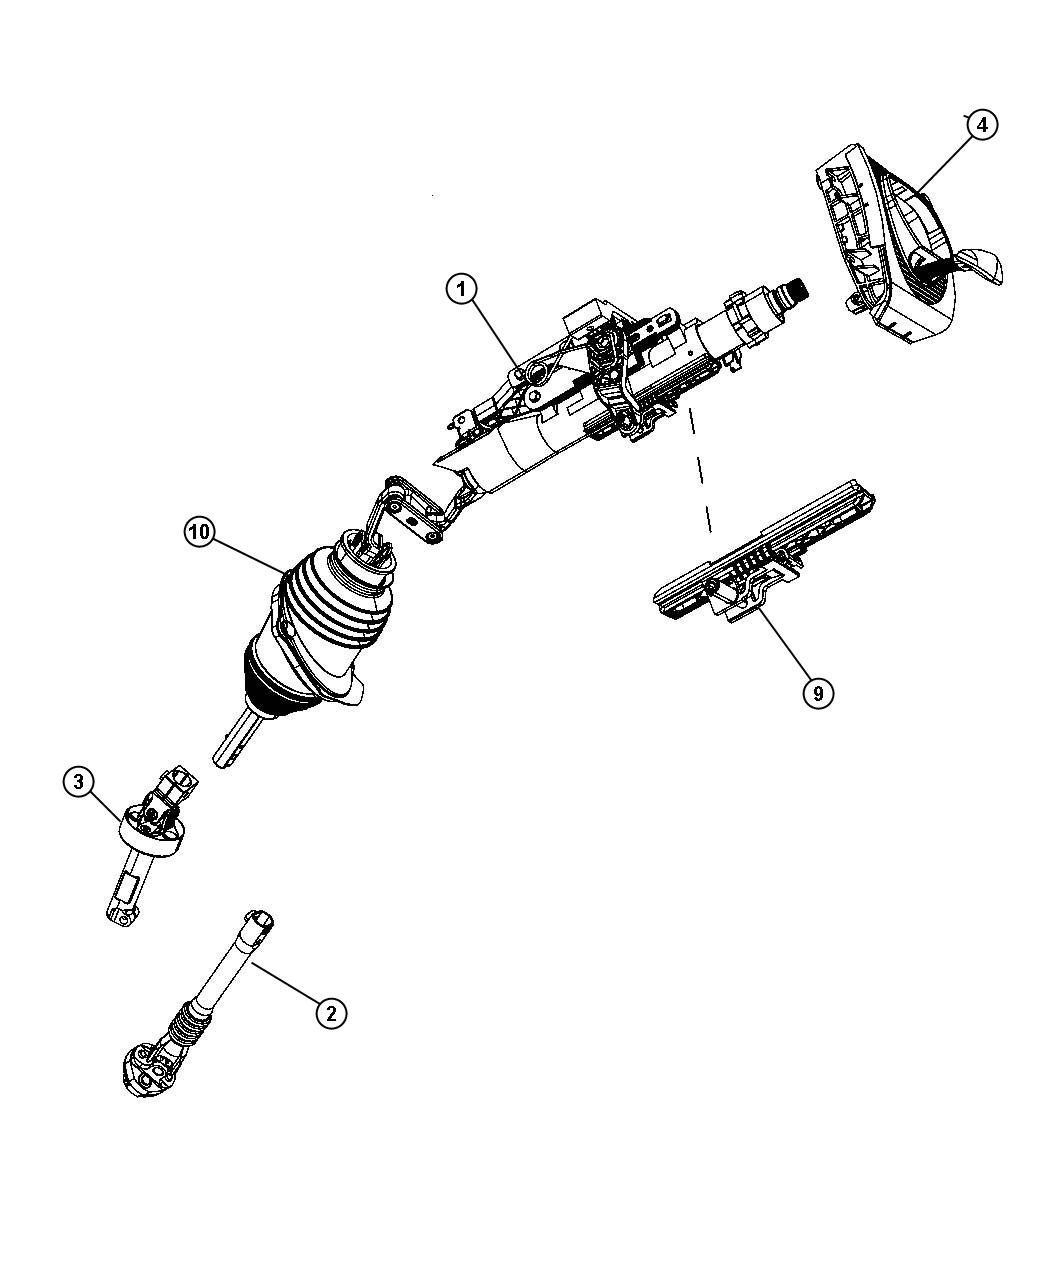 Service manual [2005 Chrysler 300c Tilt Steering Column